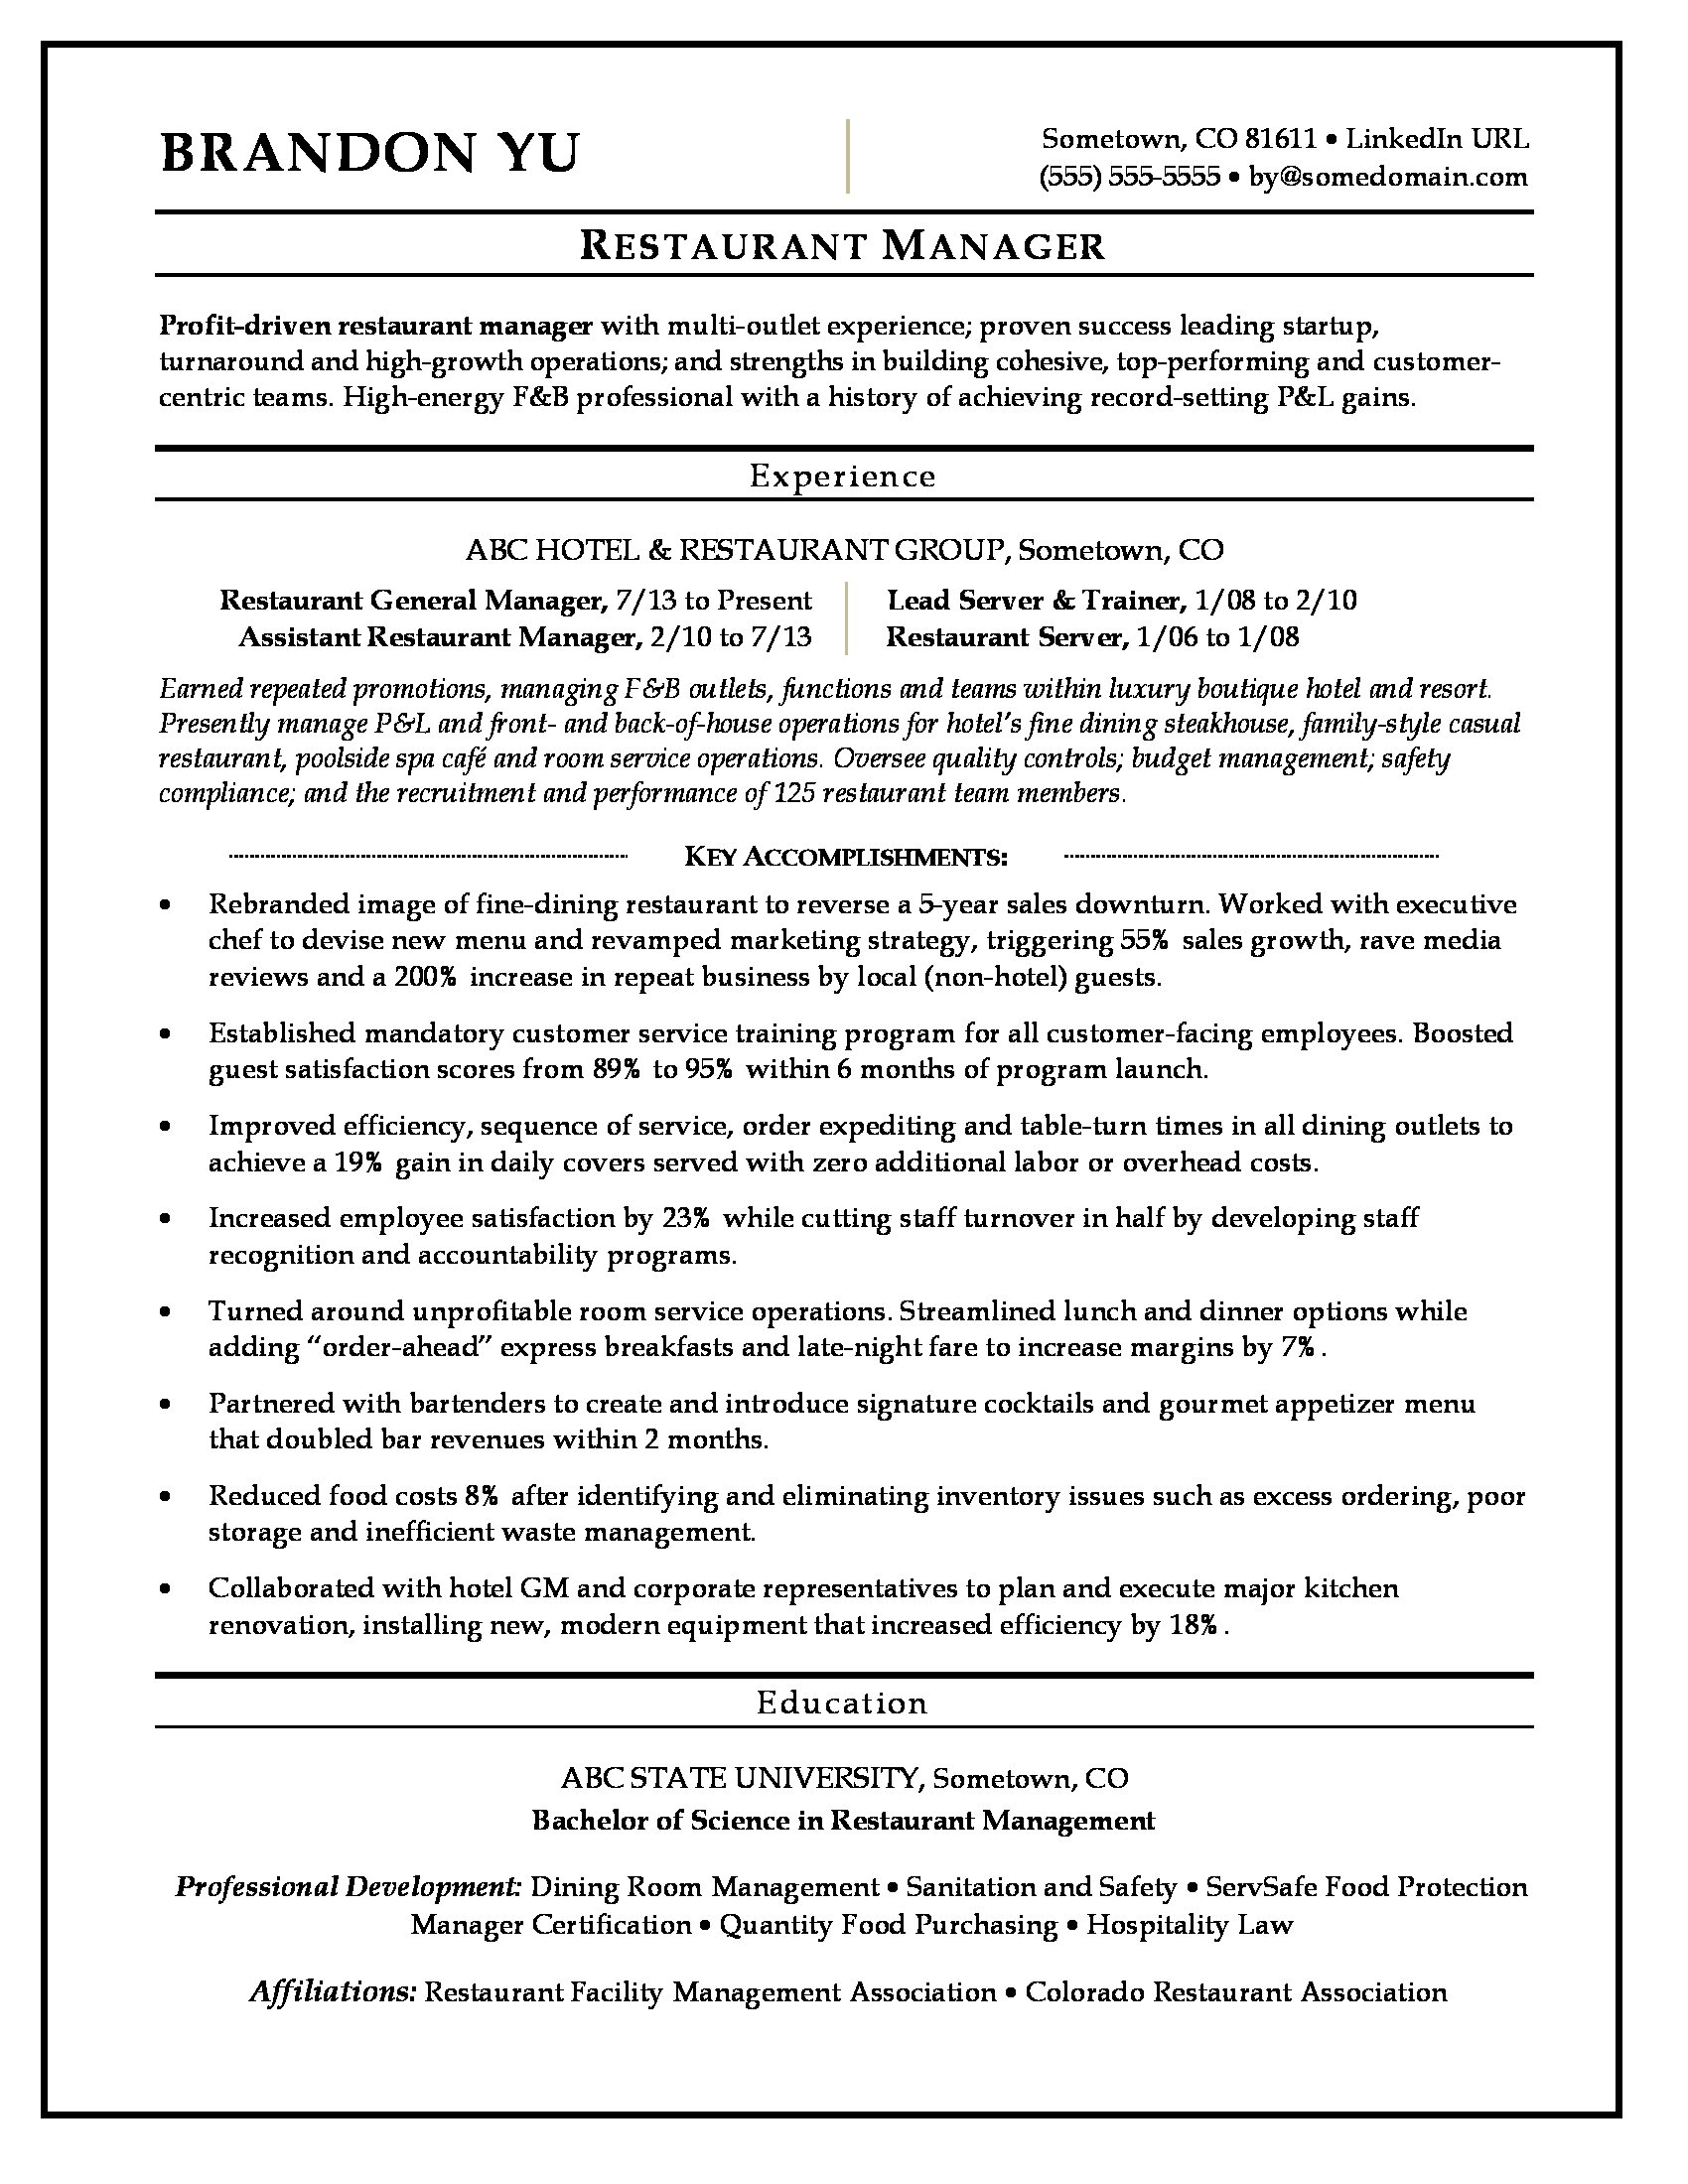 Restaurant Owner Resume Sample Restaurant Manager Resume Sample Monster